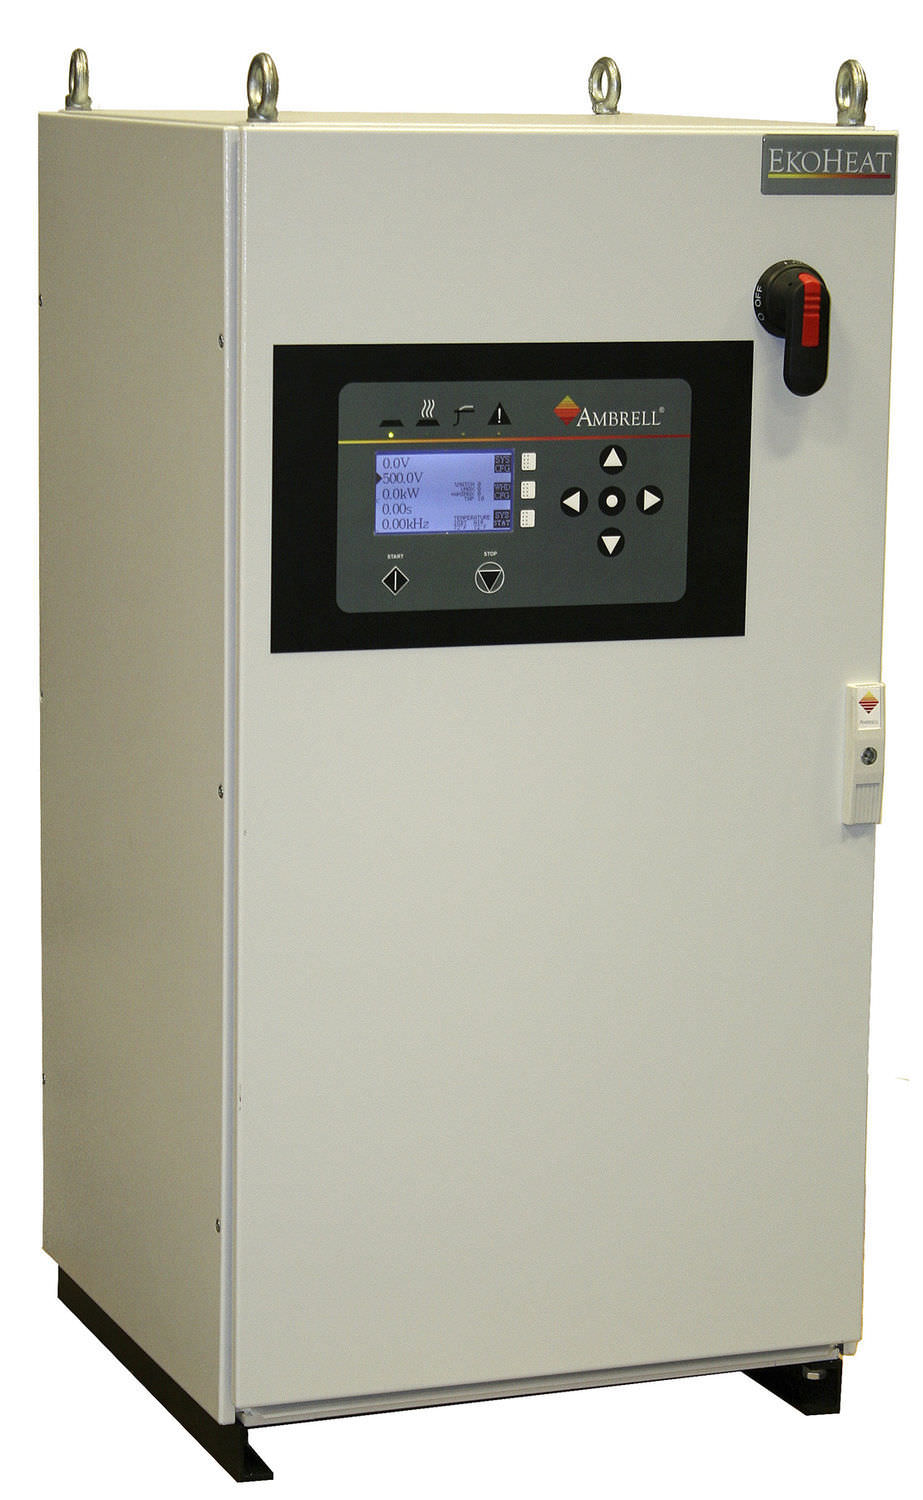 EKOHEAT 100/10 Induction heater 100 kW, 5 – 15 kHz